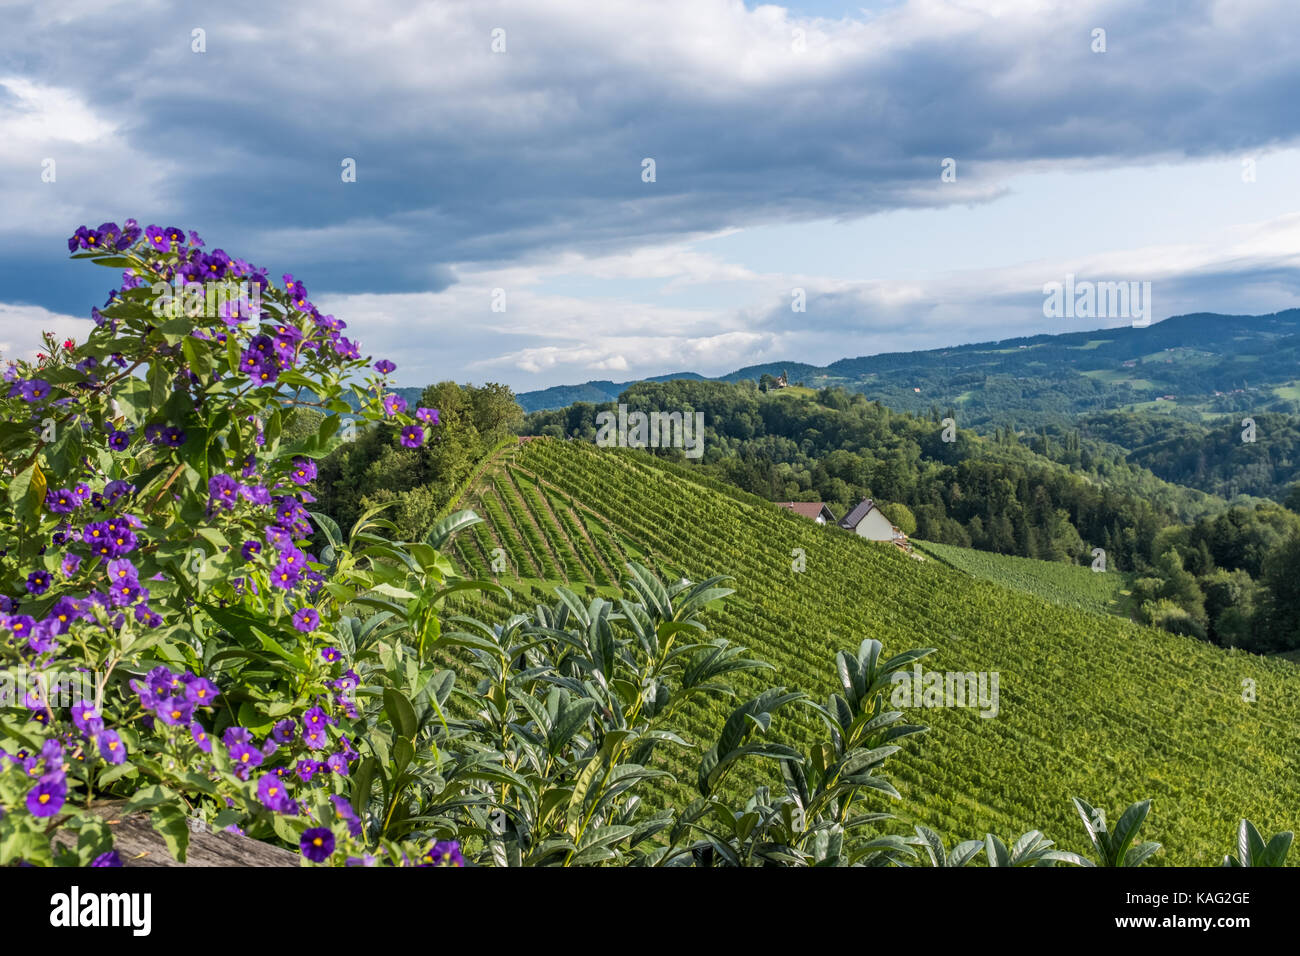 Vineyard with violet pelargonium flowers in south Styria in Austria - Stock Image